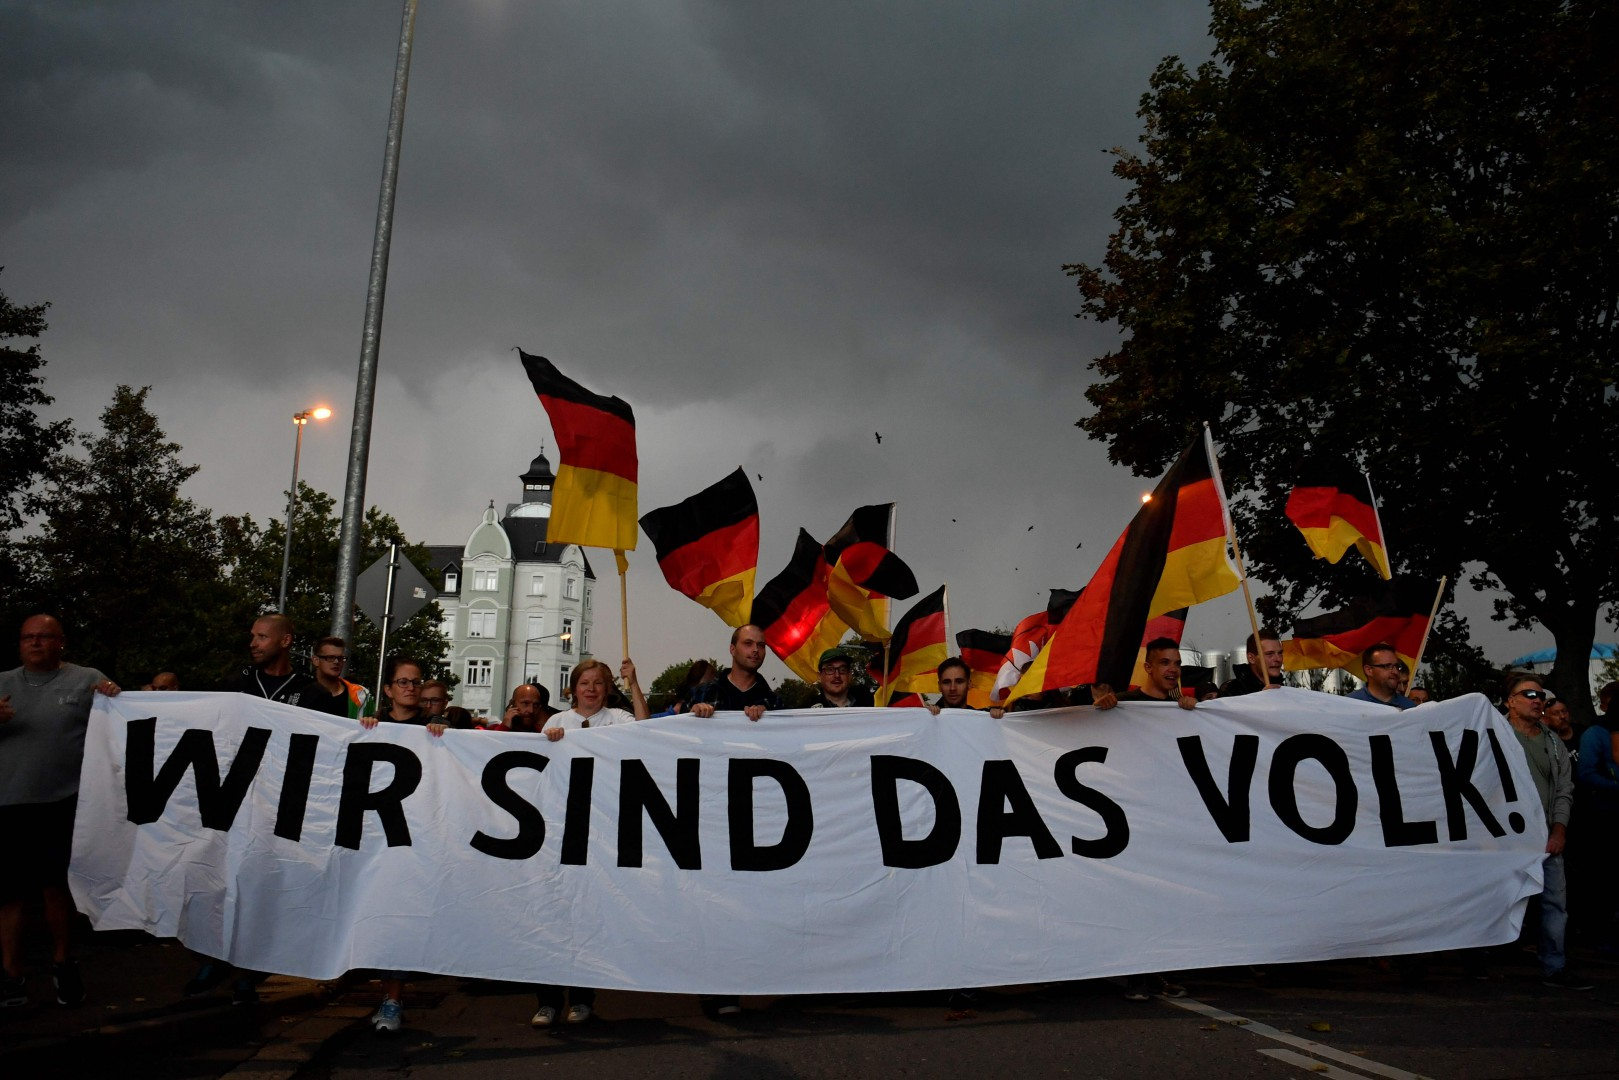 """TOPSHOT - CORRECTION - People hold a giant banner reading """"we are the people"""" during a march organised by the right-wing populist """"Pro Chemnitz"""" movement, on September 7, 2018 in Chemnitz, the flashpoint eastern city that saw protests marred by neo-Nazi violence. - The rally is to be followed by a concert which counterprotesters called """"Stronger Together"""" urging """"openness and diversity"""". (Photo by John MACDOUGALL / AFP) / ìThe erroneous mention[s] appearing in the metadata of this photo by John MACDOUGALL has been modified in AFP systems in the following manner: [a march organised by the Pro Chemnitz movement] instead of [organised by Pro Chemnitz movement, Pedida and AfD]. Please immediately remove the erroneous mention[s] from all your online services and delete it (them) from your servers. If you have been authorized by AFP to distribute it (them) to third parties, please ensure that the same actions are carried out by them. Failure to promptly comply with these instructions will entail liability on your part for any continued or post notification usage. Therefore we thank you very much for all your attention and prompt action. We are sorry for the inconvenience this notification may cause and remain at your disposal for any further information you may require.î"""